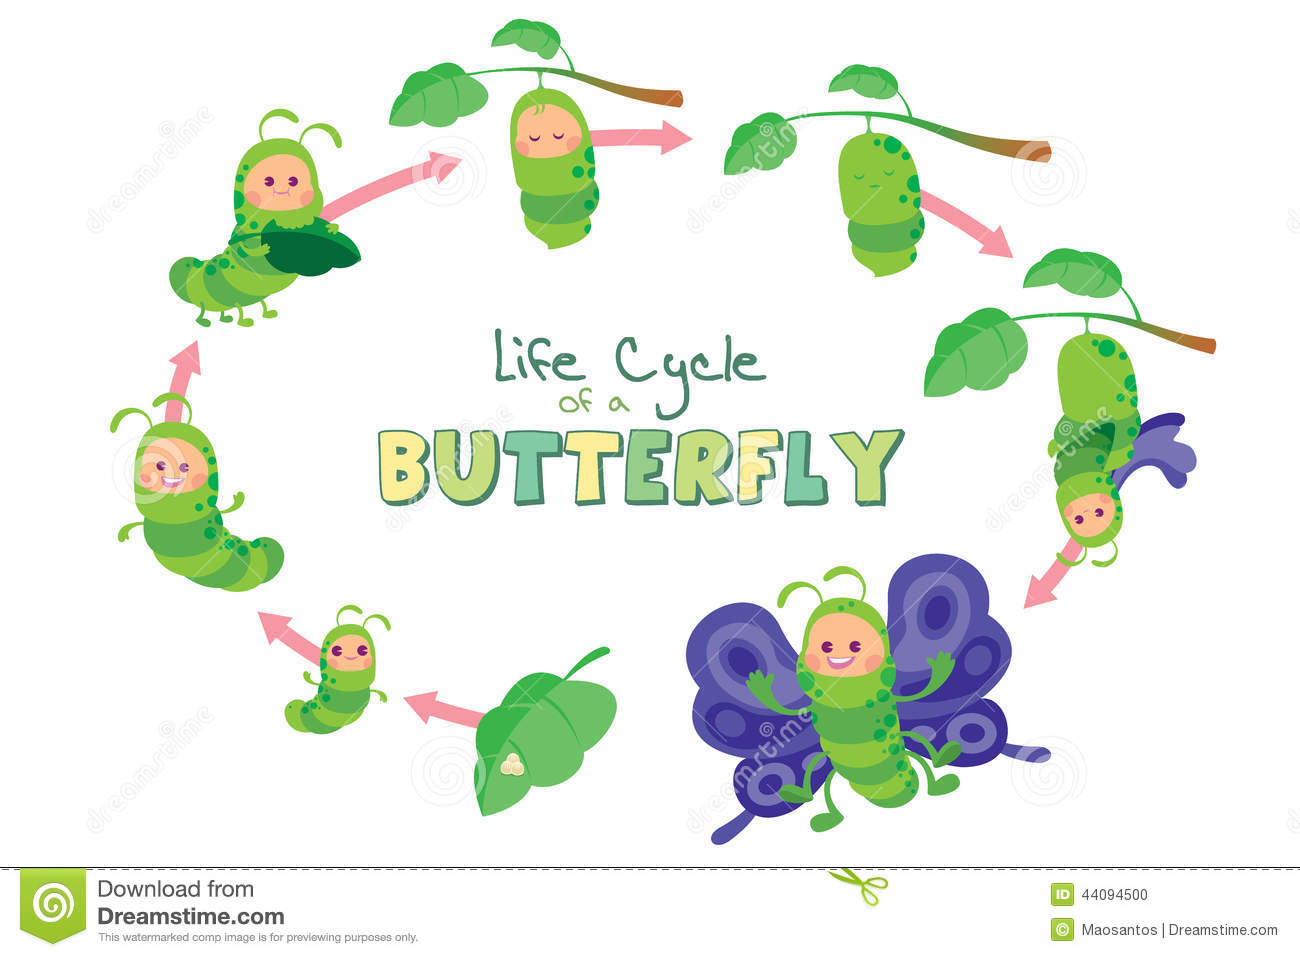 Egg clipart butterfly life cycle #13